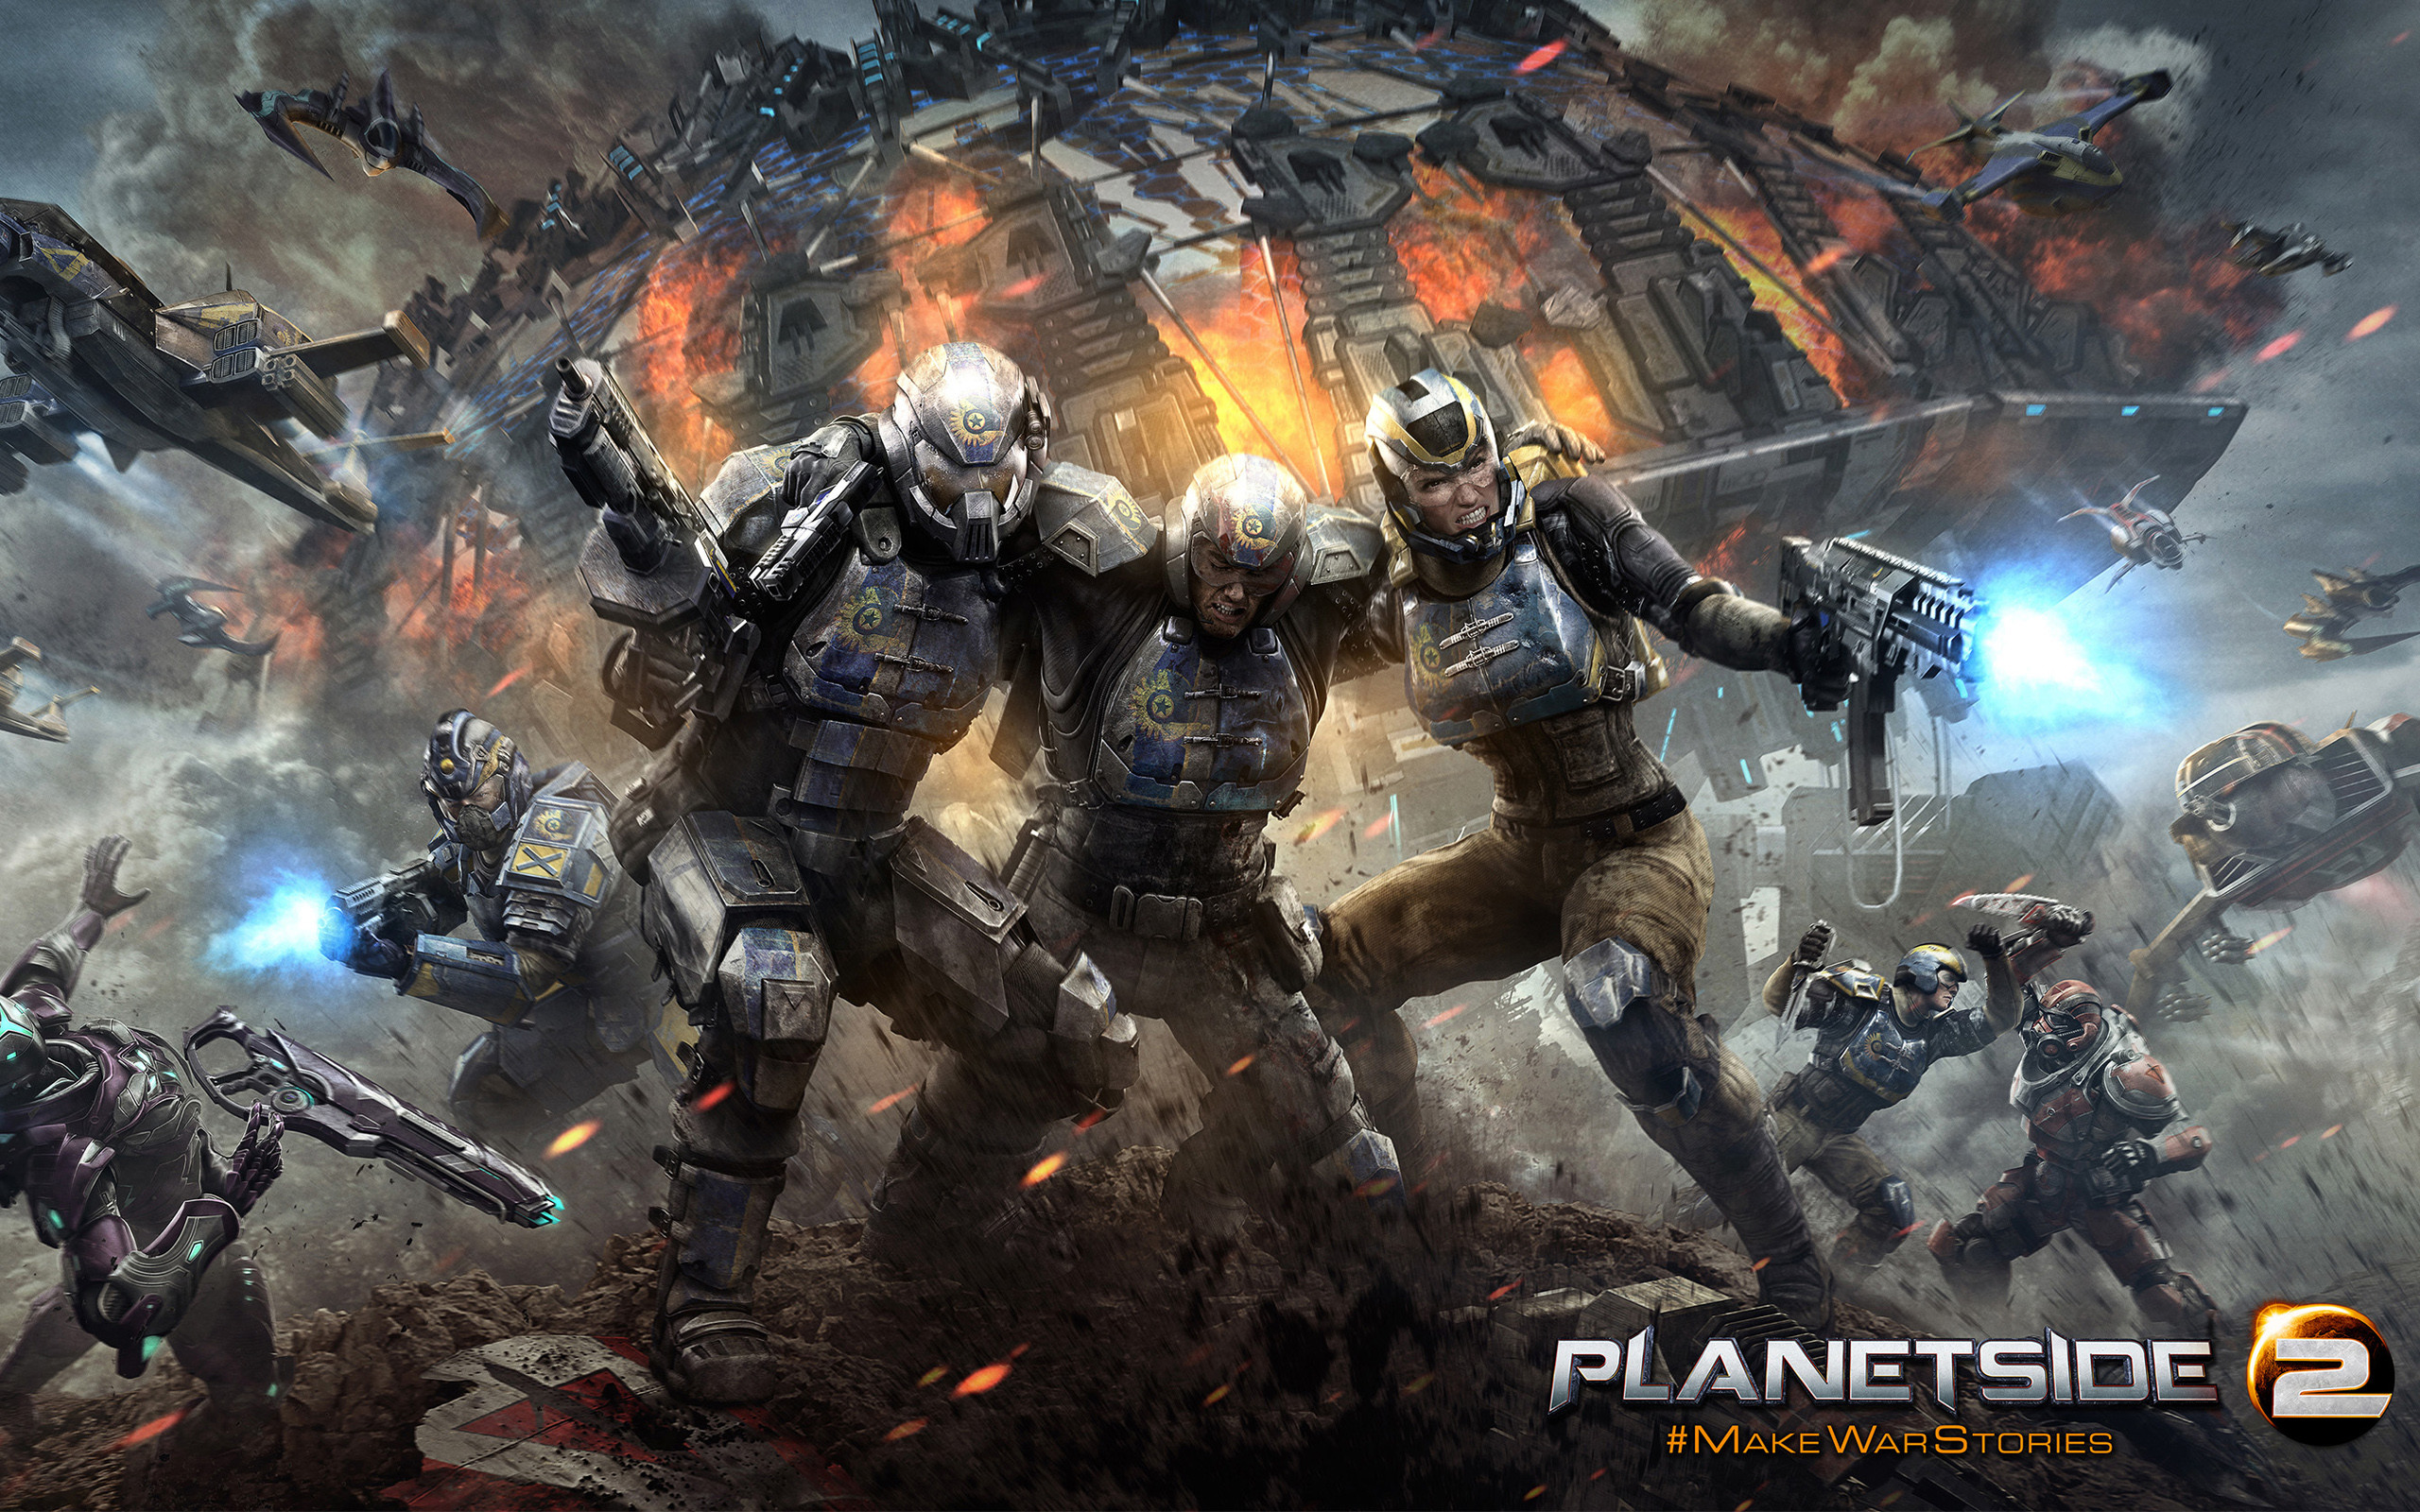 planetside 2 wallpapers (89+ background pictures)